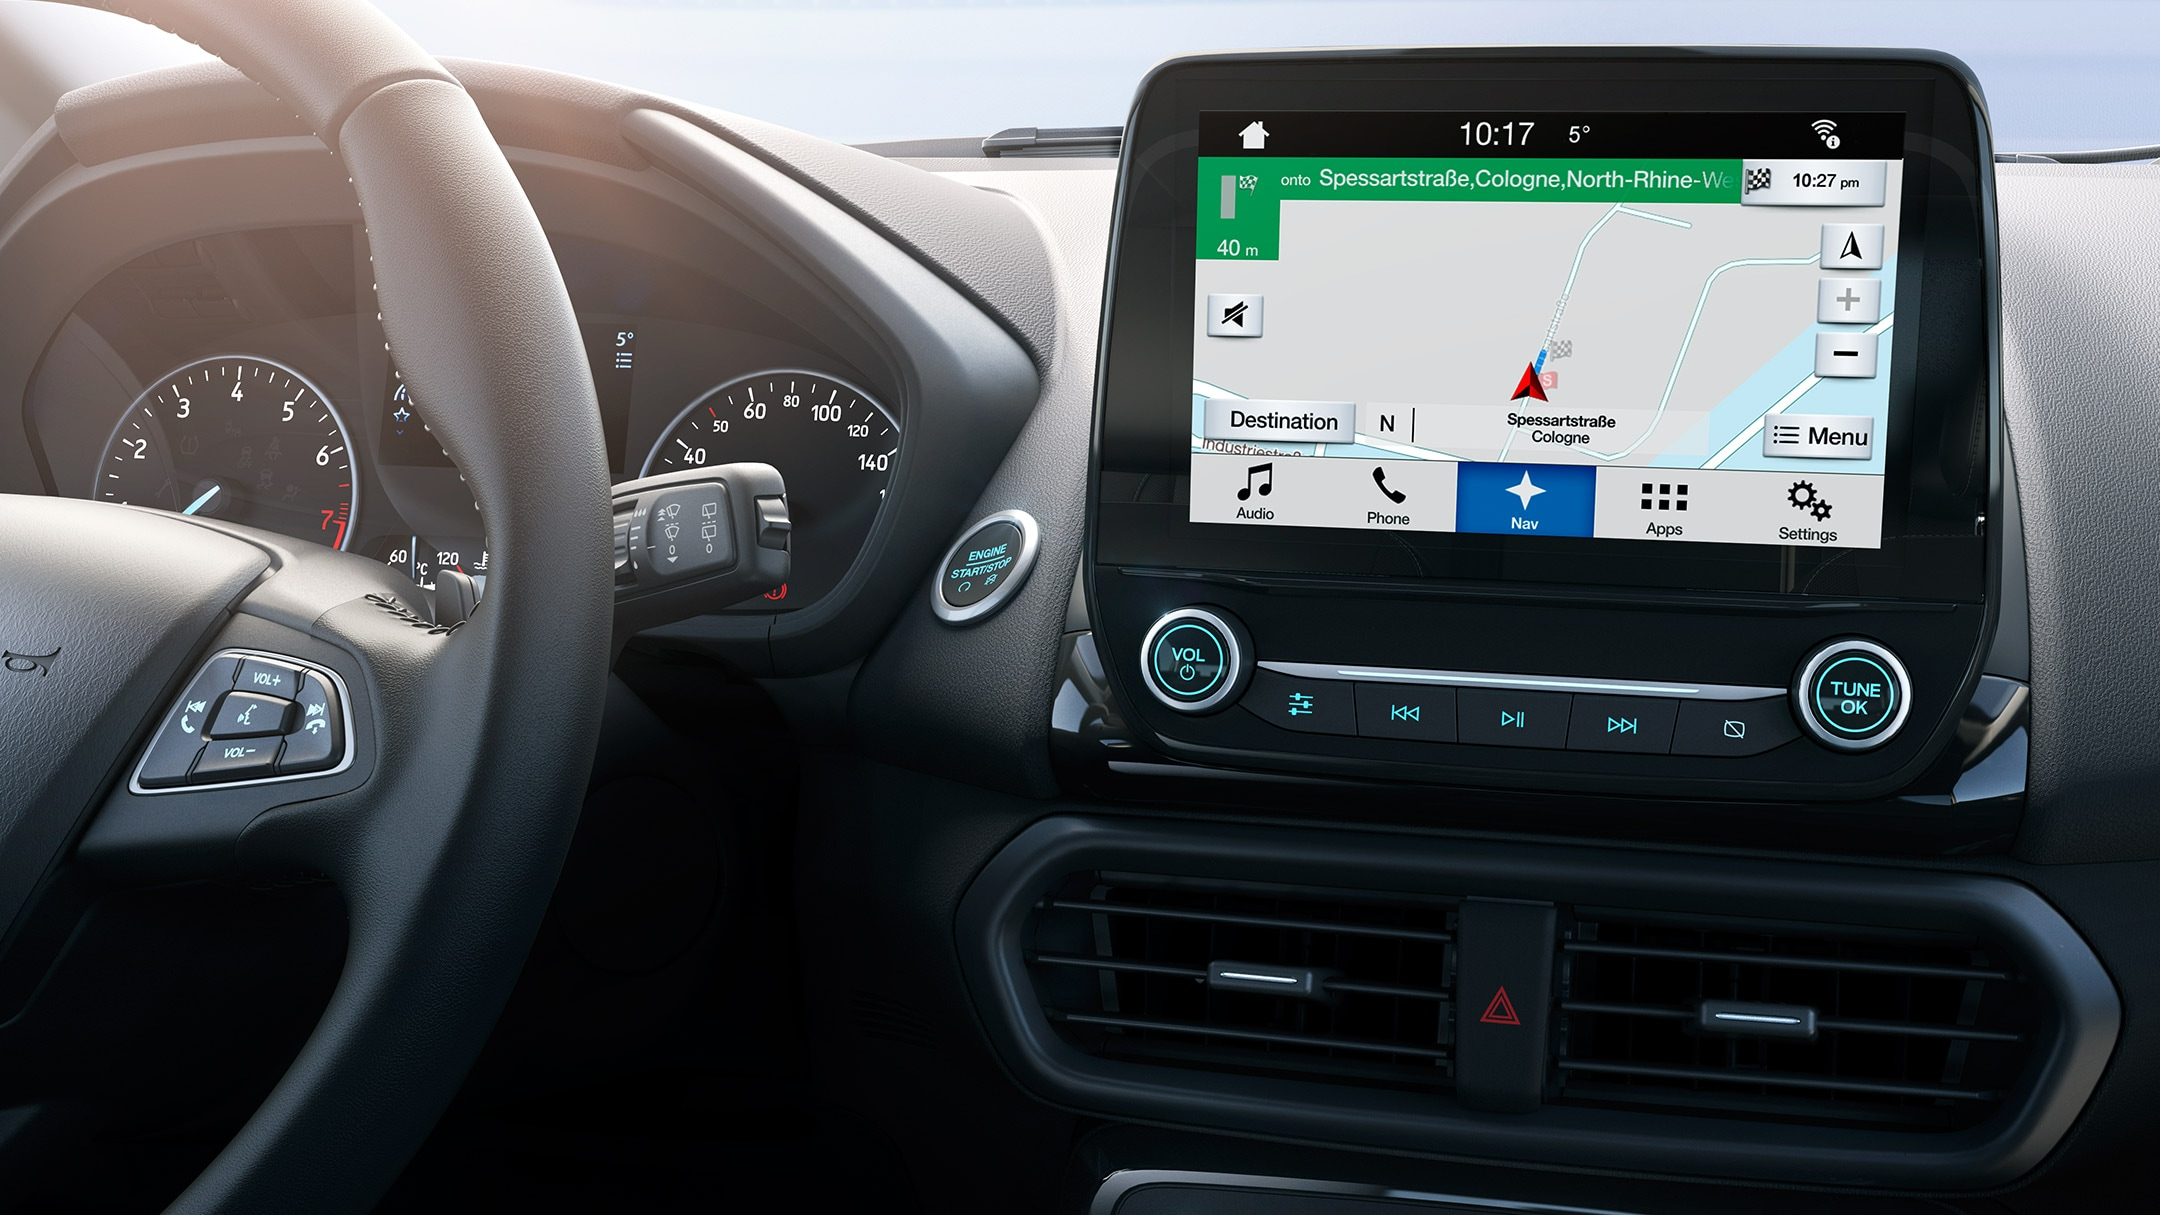 New Ford EcoSport SYNC 3 display